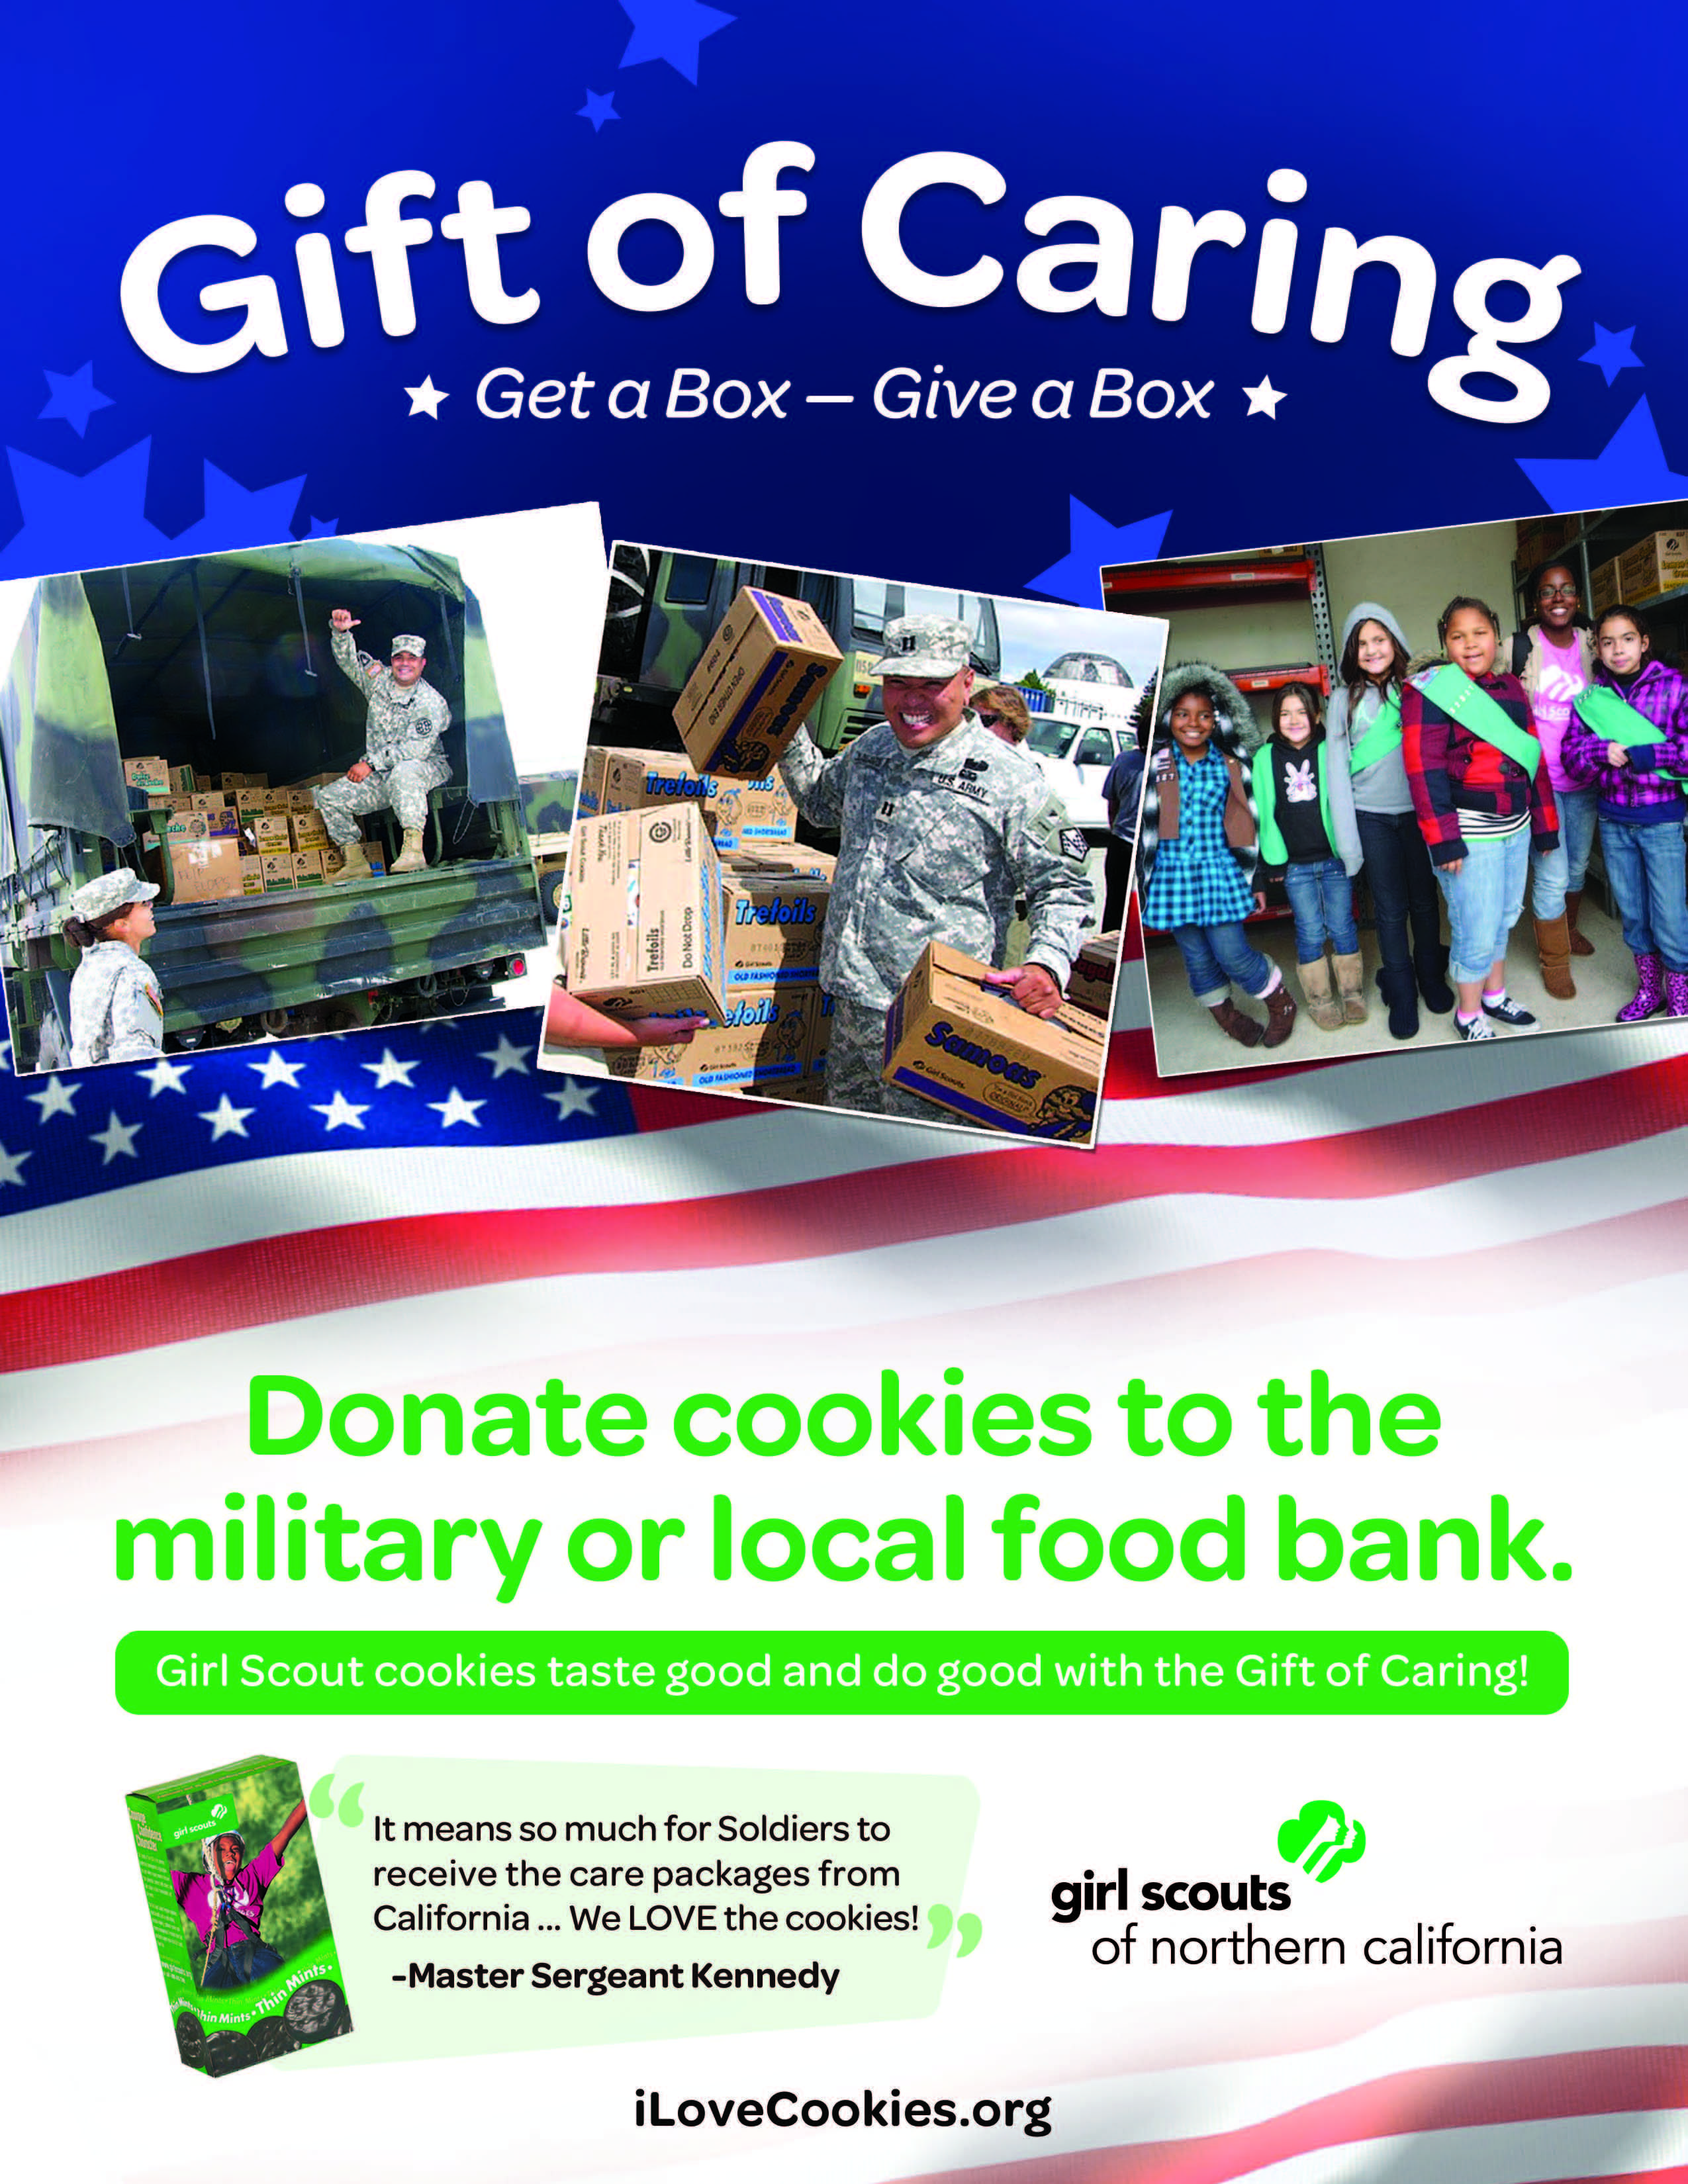 you can donate girl scout cookies to military overseas or